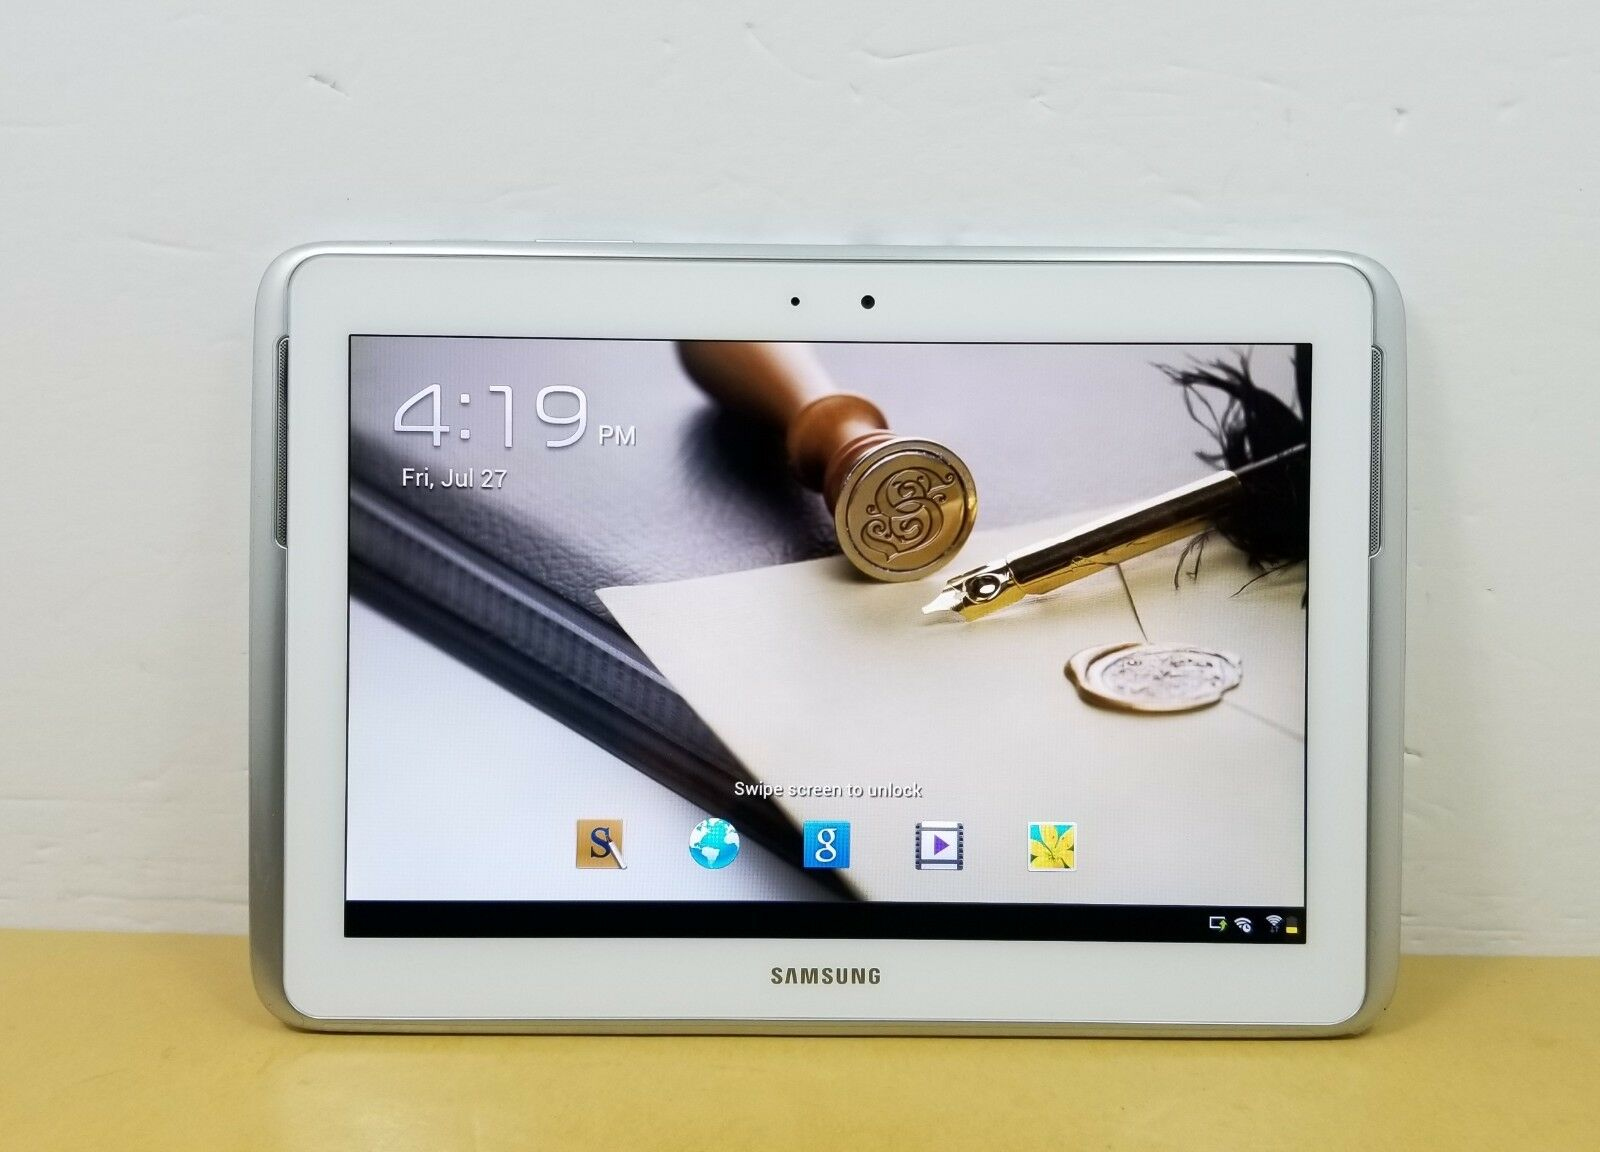 Samsung Galaxy Note 10.1 GT-N8013 16GB Wi-Fi Android Tablet